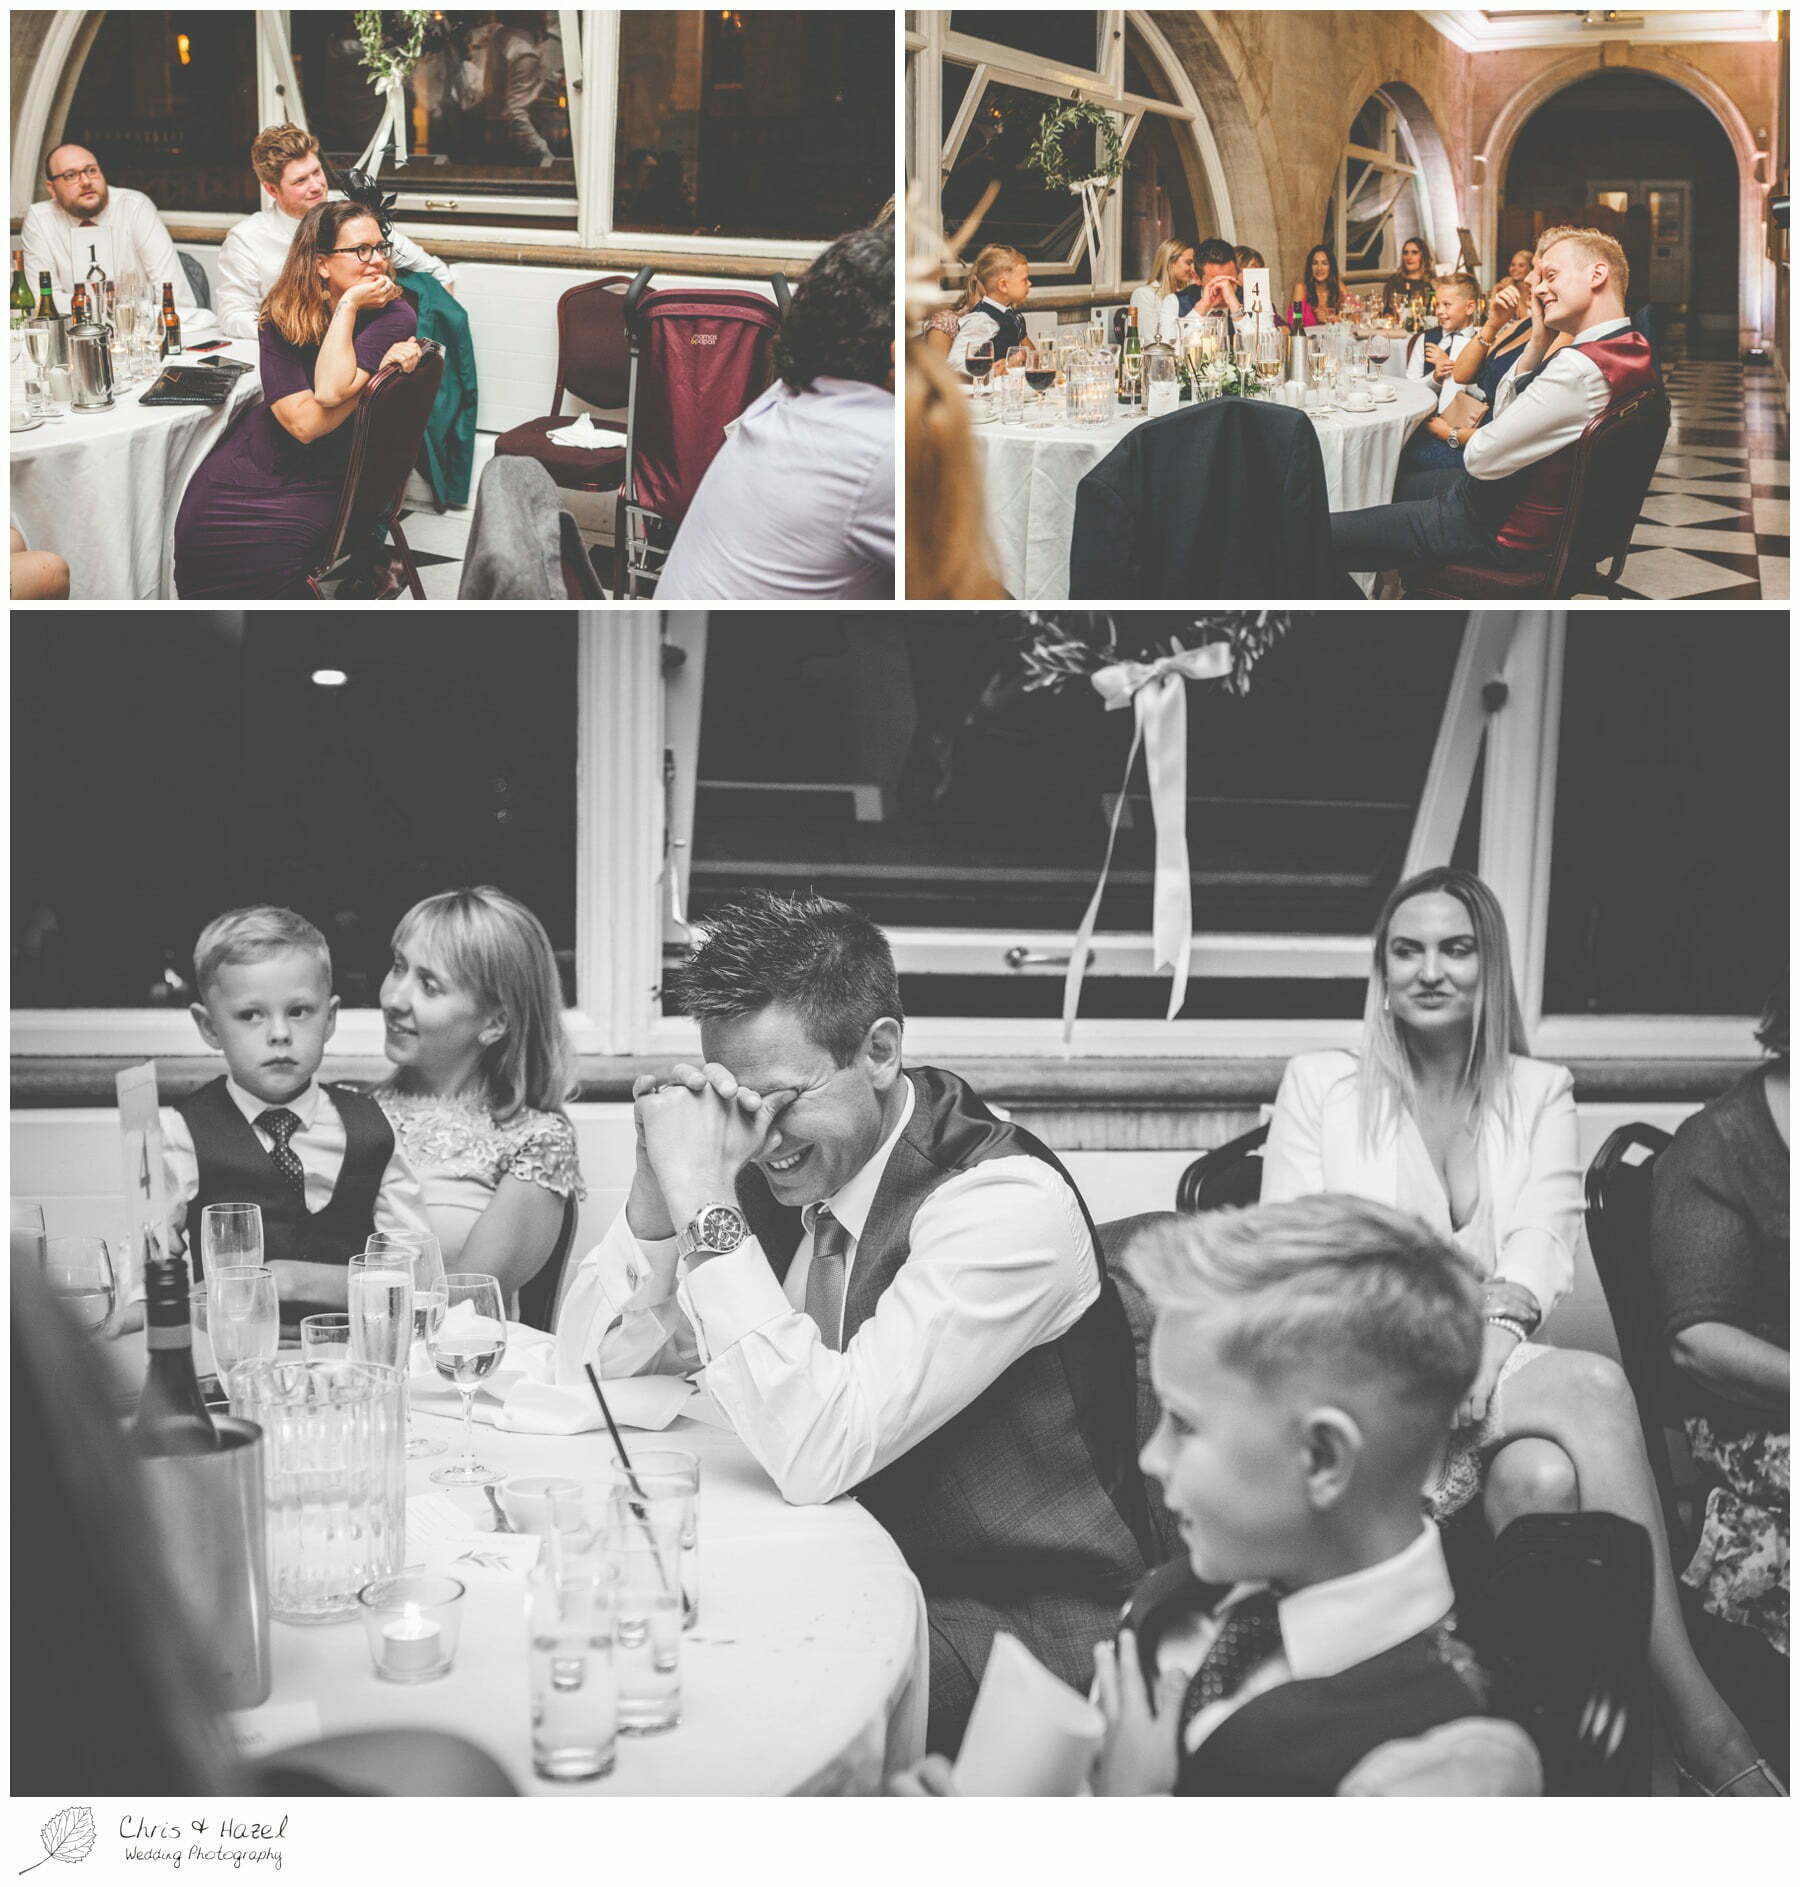 Speech reaction, Wedding speeches, wedding breakfast on the terrace at Roman Baths Pump Rooms, The Roman Baths Wedding Photography, Roman Baths Wedding Photographer, Wedding in Bath, Bath Wedding Day, documentary wedding photography, Chris and Hazel Wedding Photography Bath, Andy Frost Sian Upson